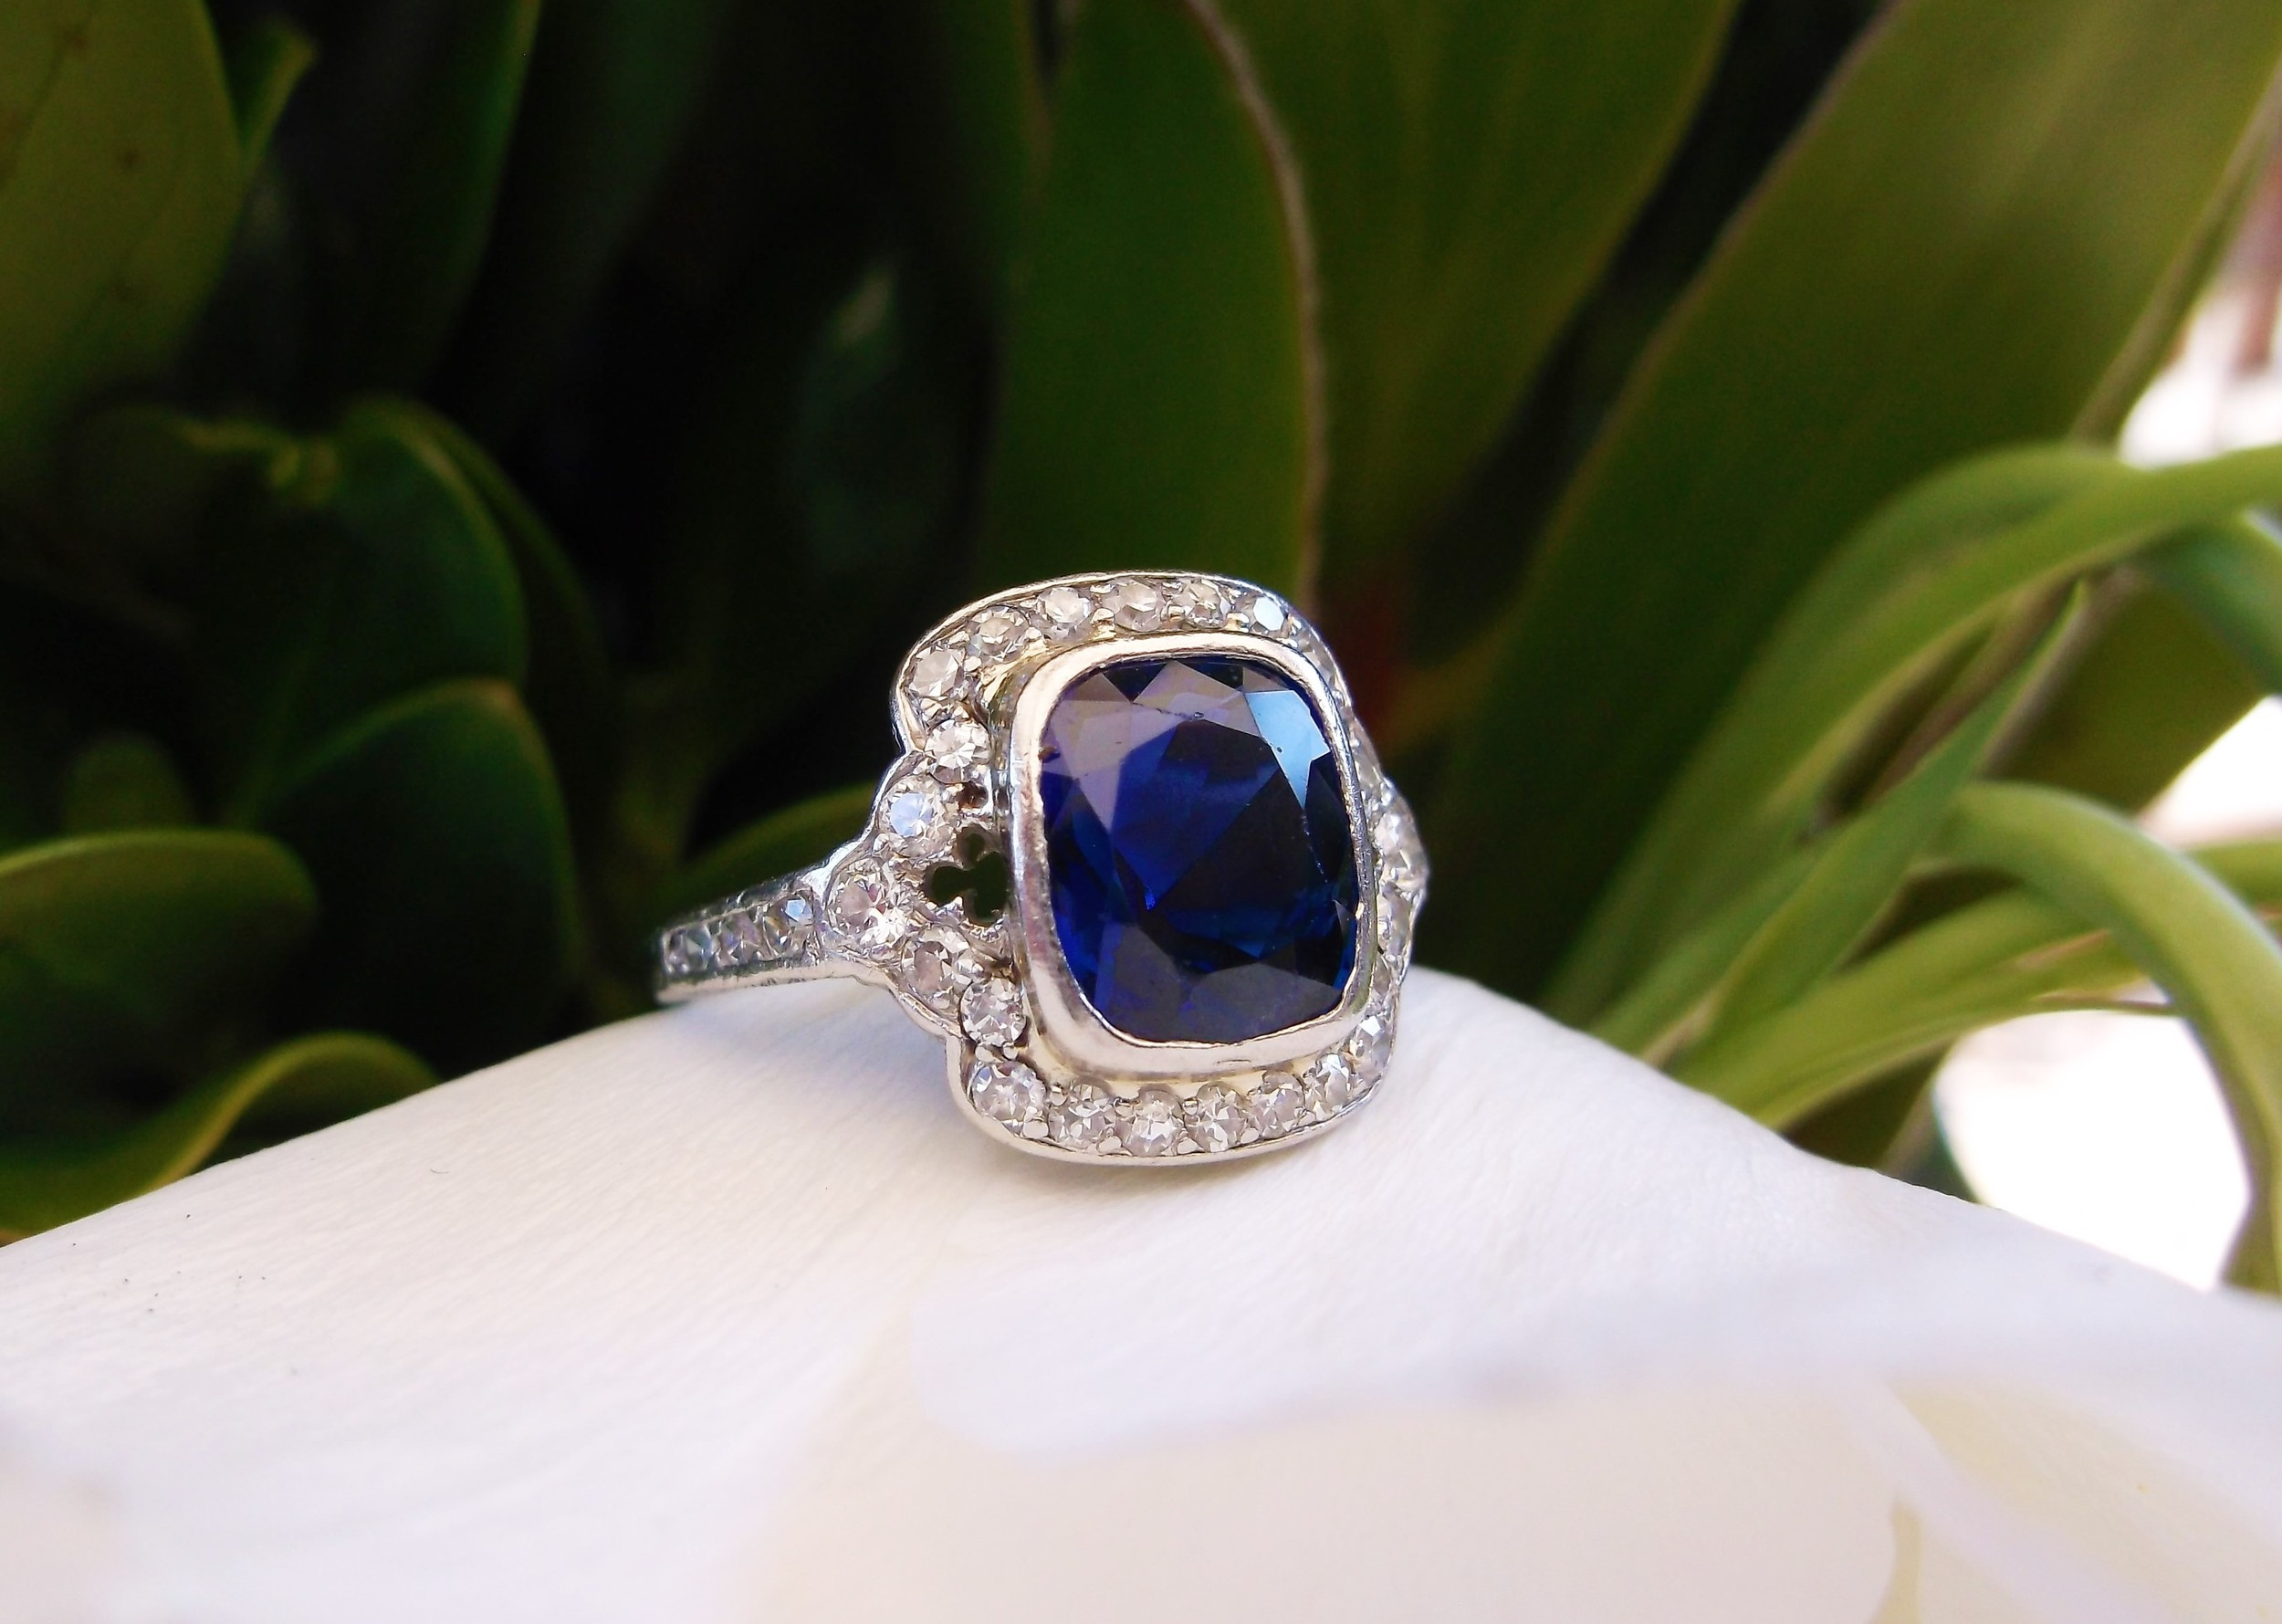 SOLD - Mesmerizing 1920's 2.25 carat blue sapphire set in a lovely diamond and platinum mounting.